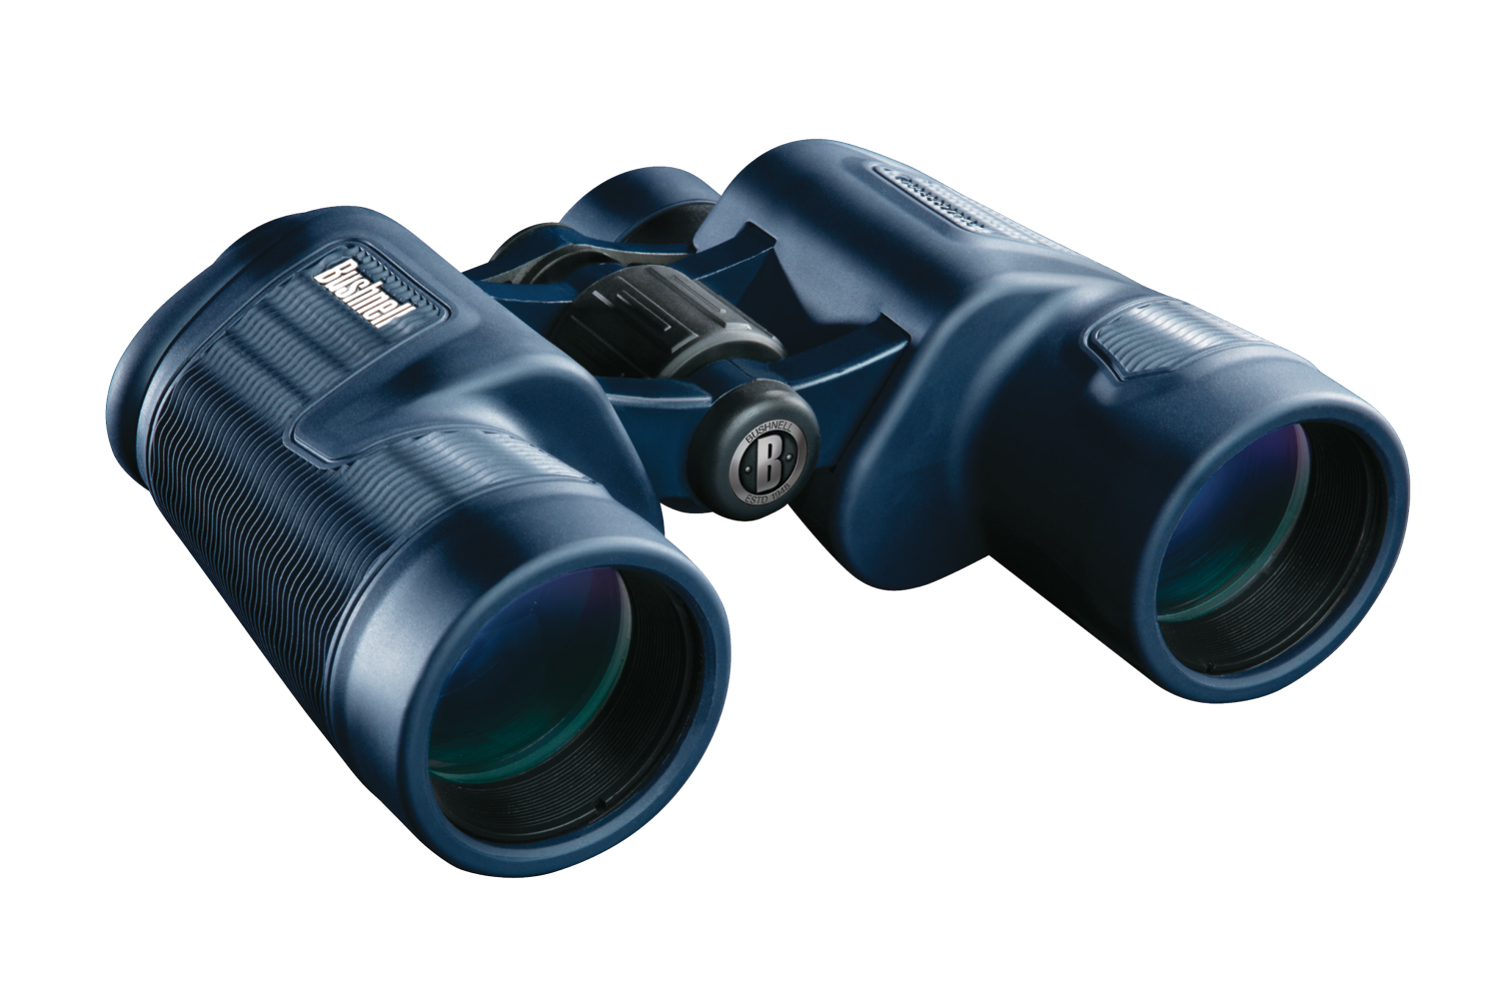 Бинокль Bushnell H2O PORRO 10x42 бинокль zeiss conquest hd 10x42